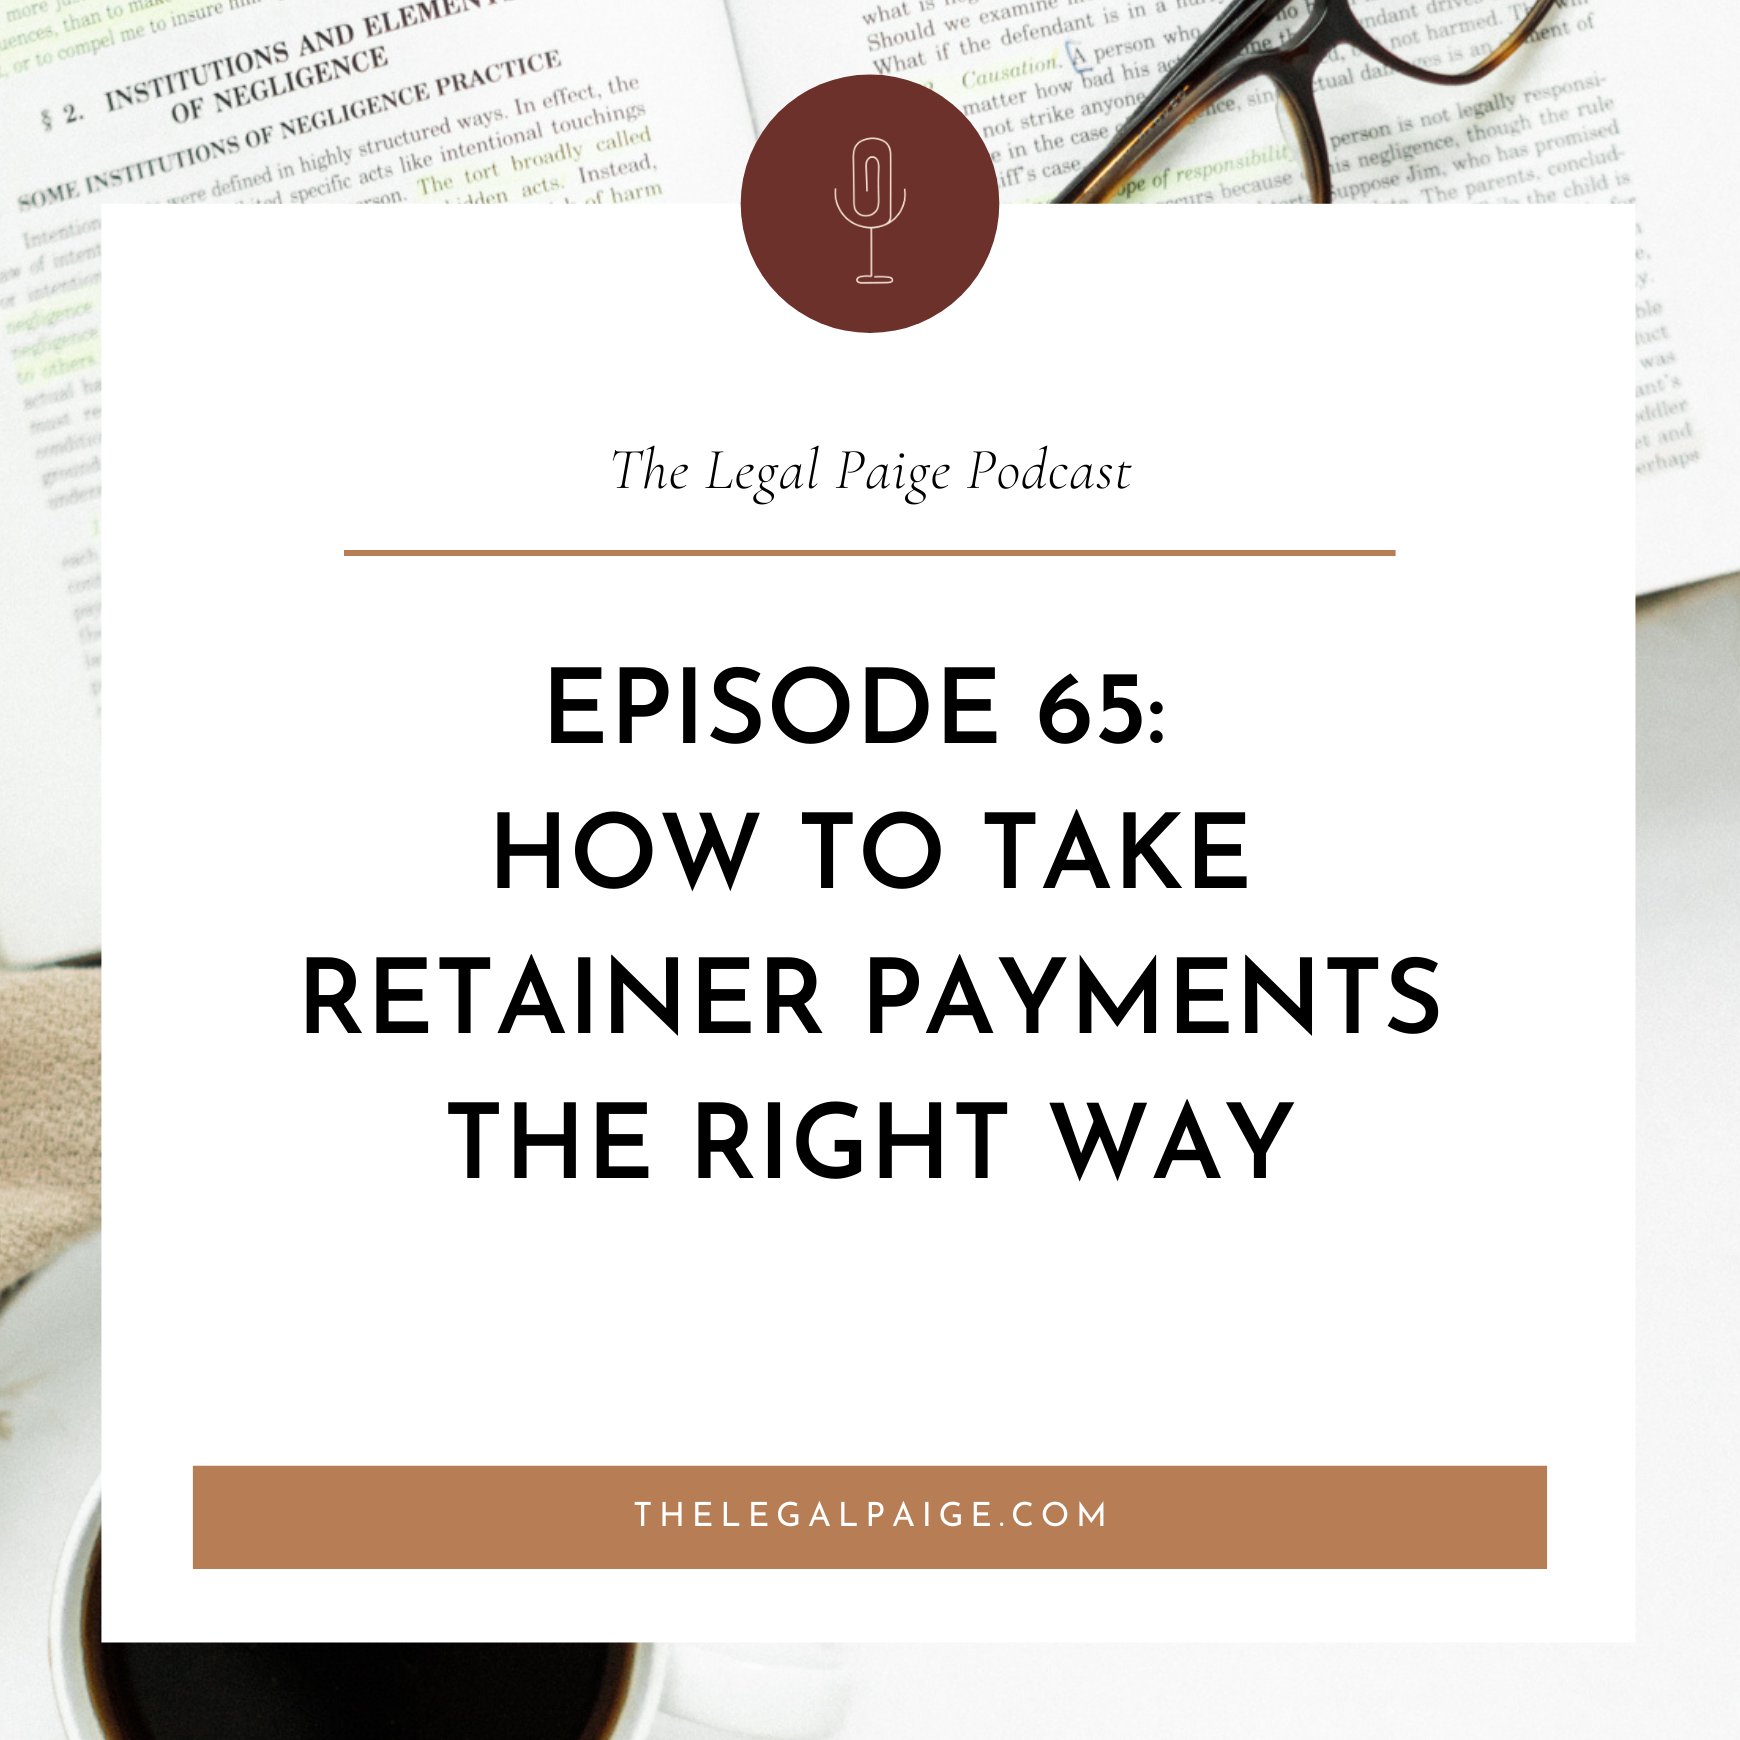 Episode 65: How to Take Retainer Payments the RIGHT Way